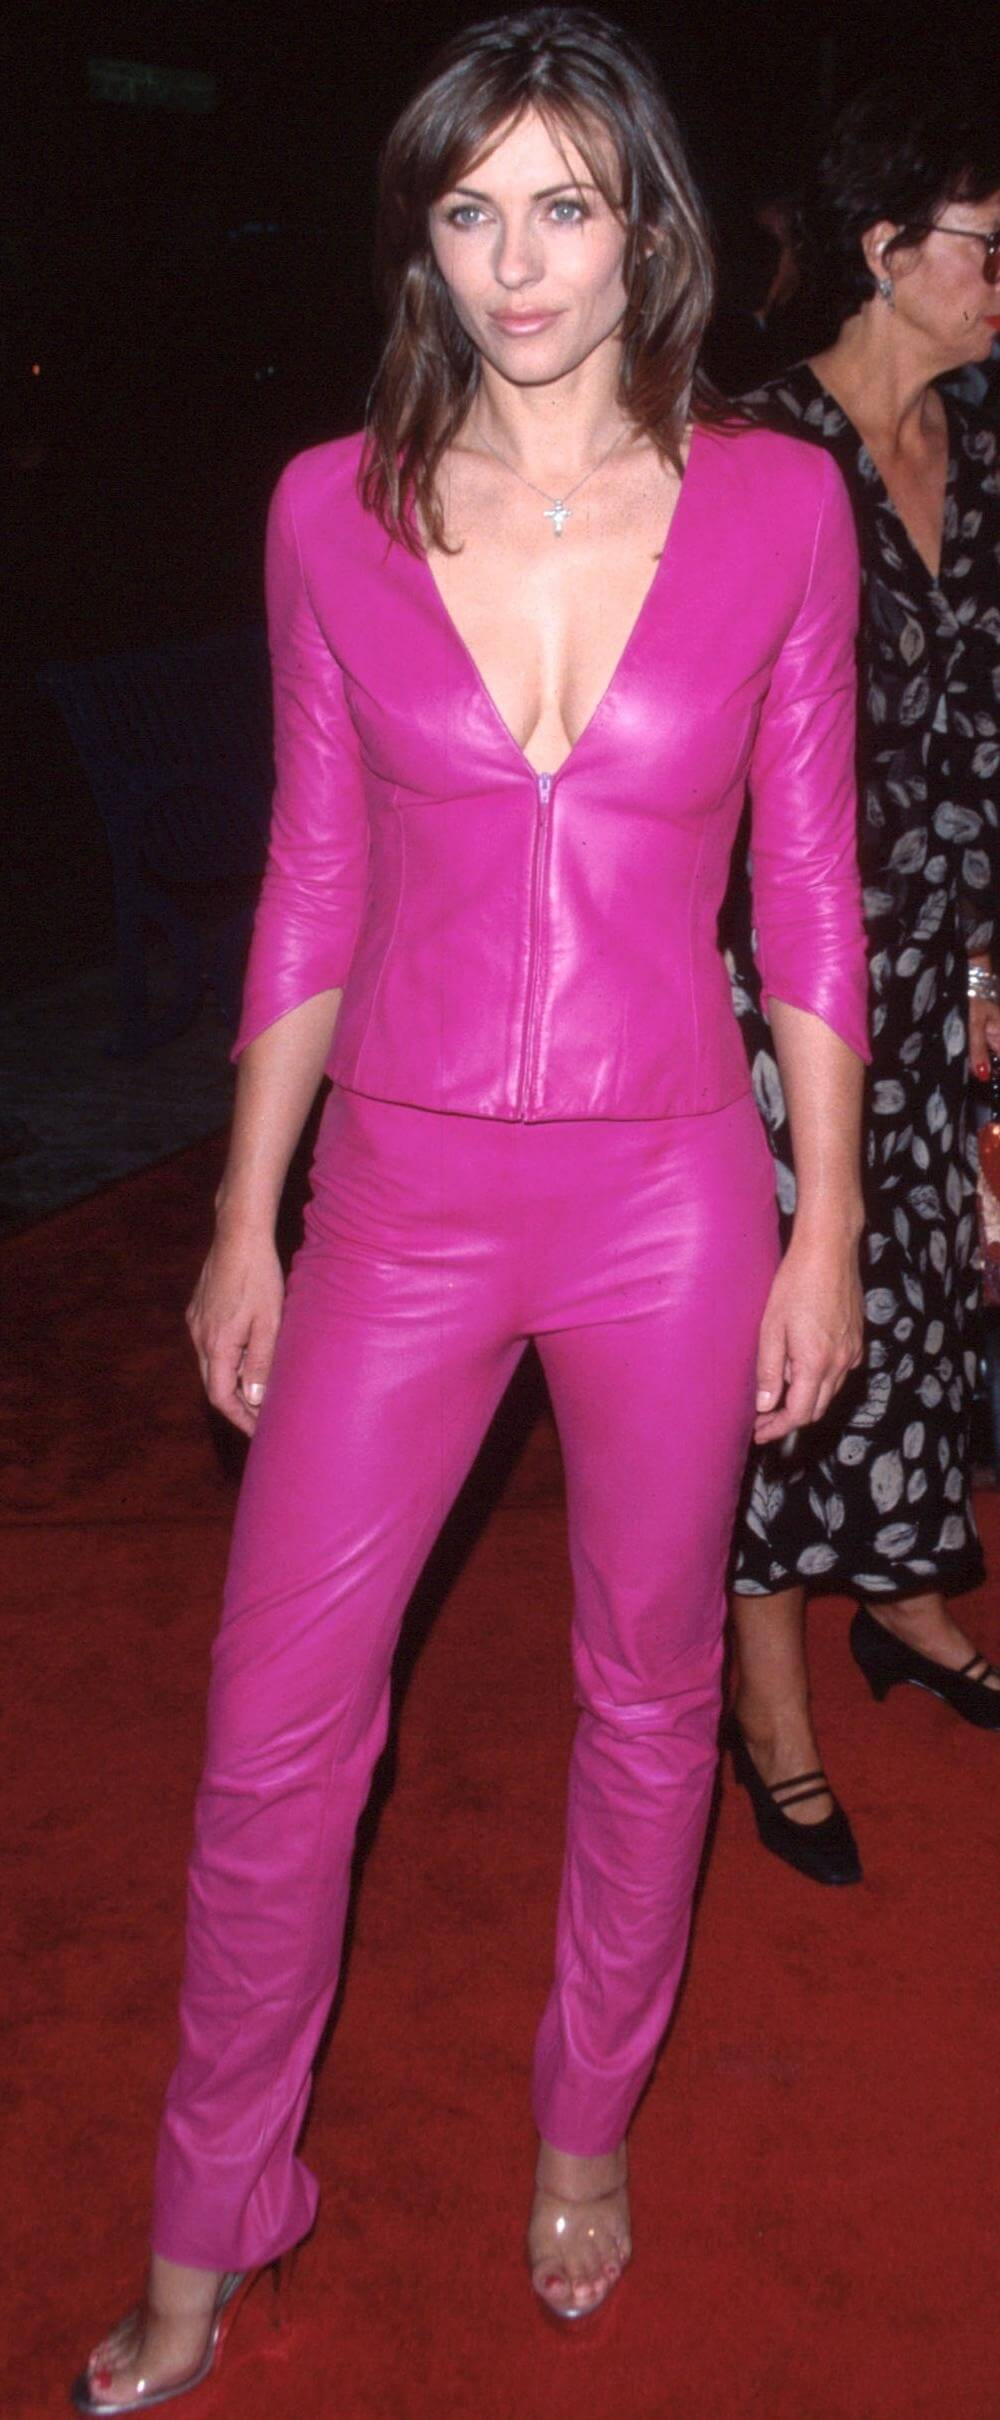 61 Sexy Elizabeth Hurley Pictures Captured Over The Years - Geeks On Coffee-5033